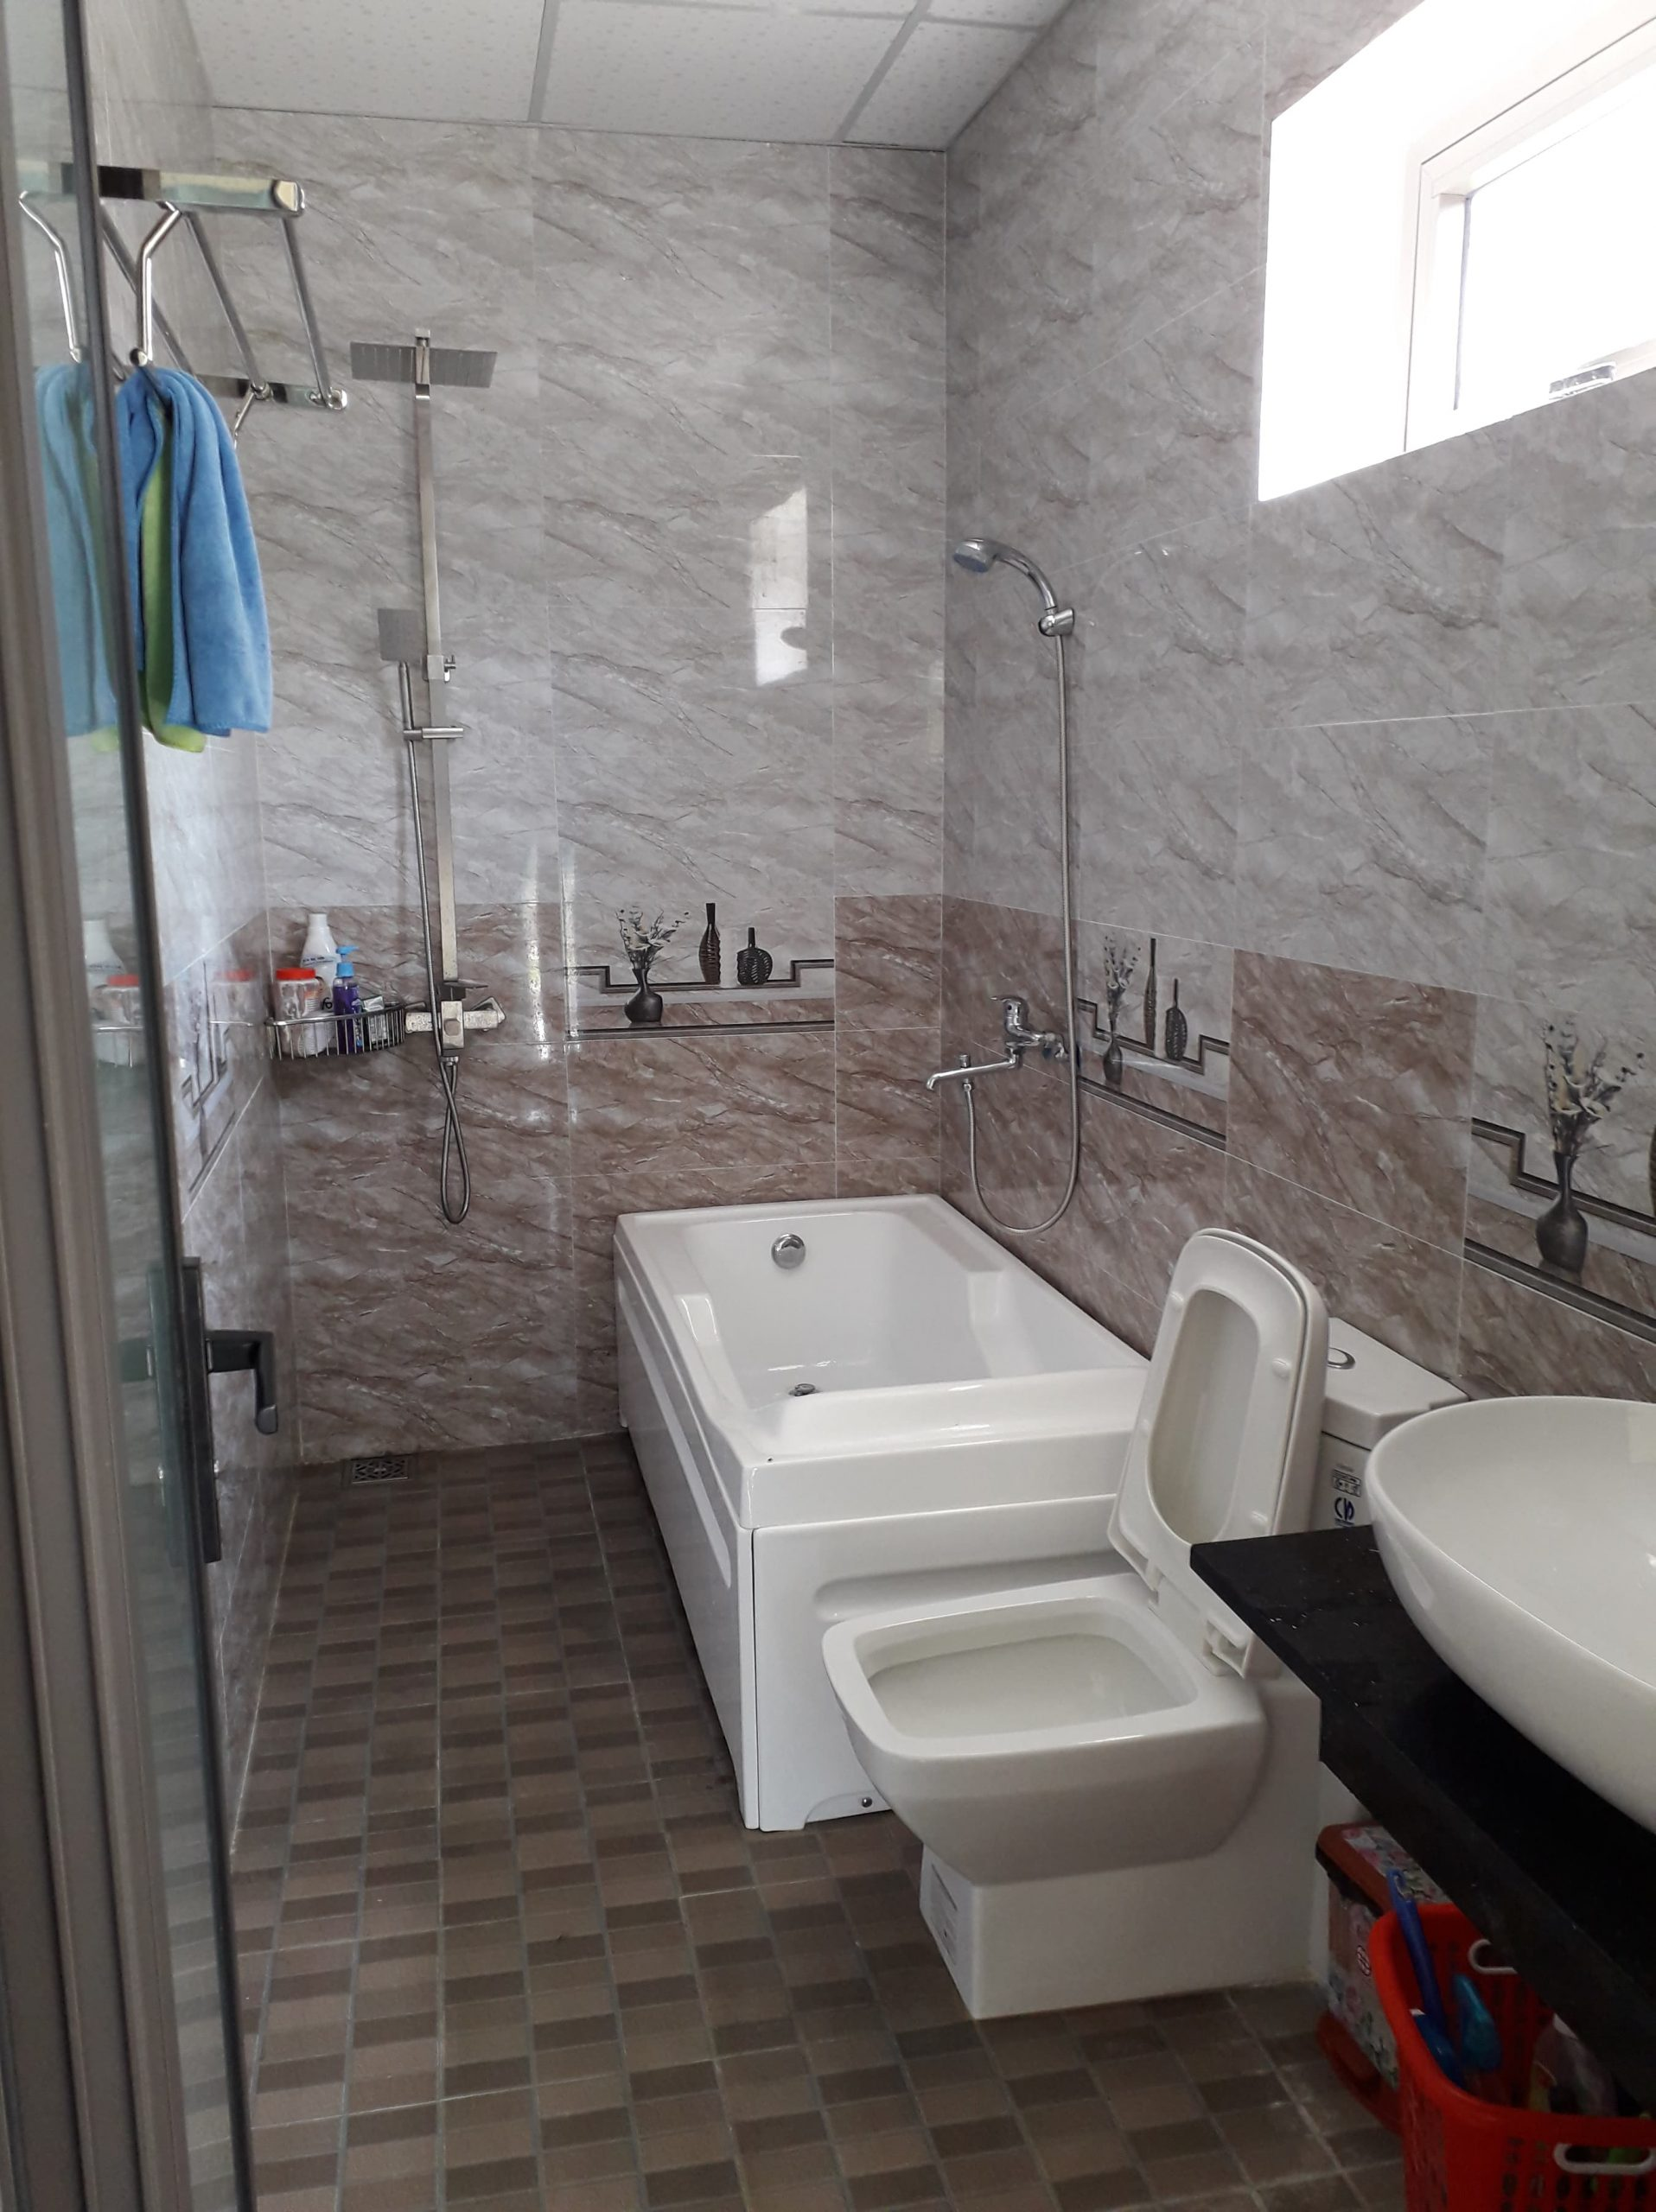 Budget Three Bedroom House For Rent in Cam Thanh Hoi An